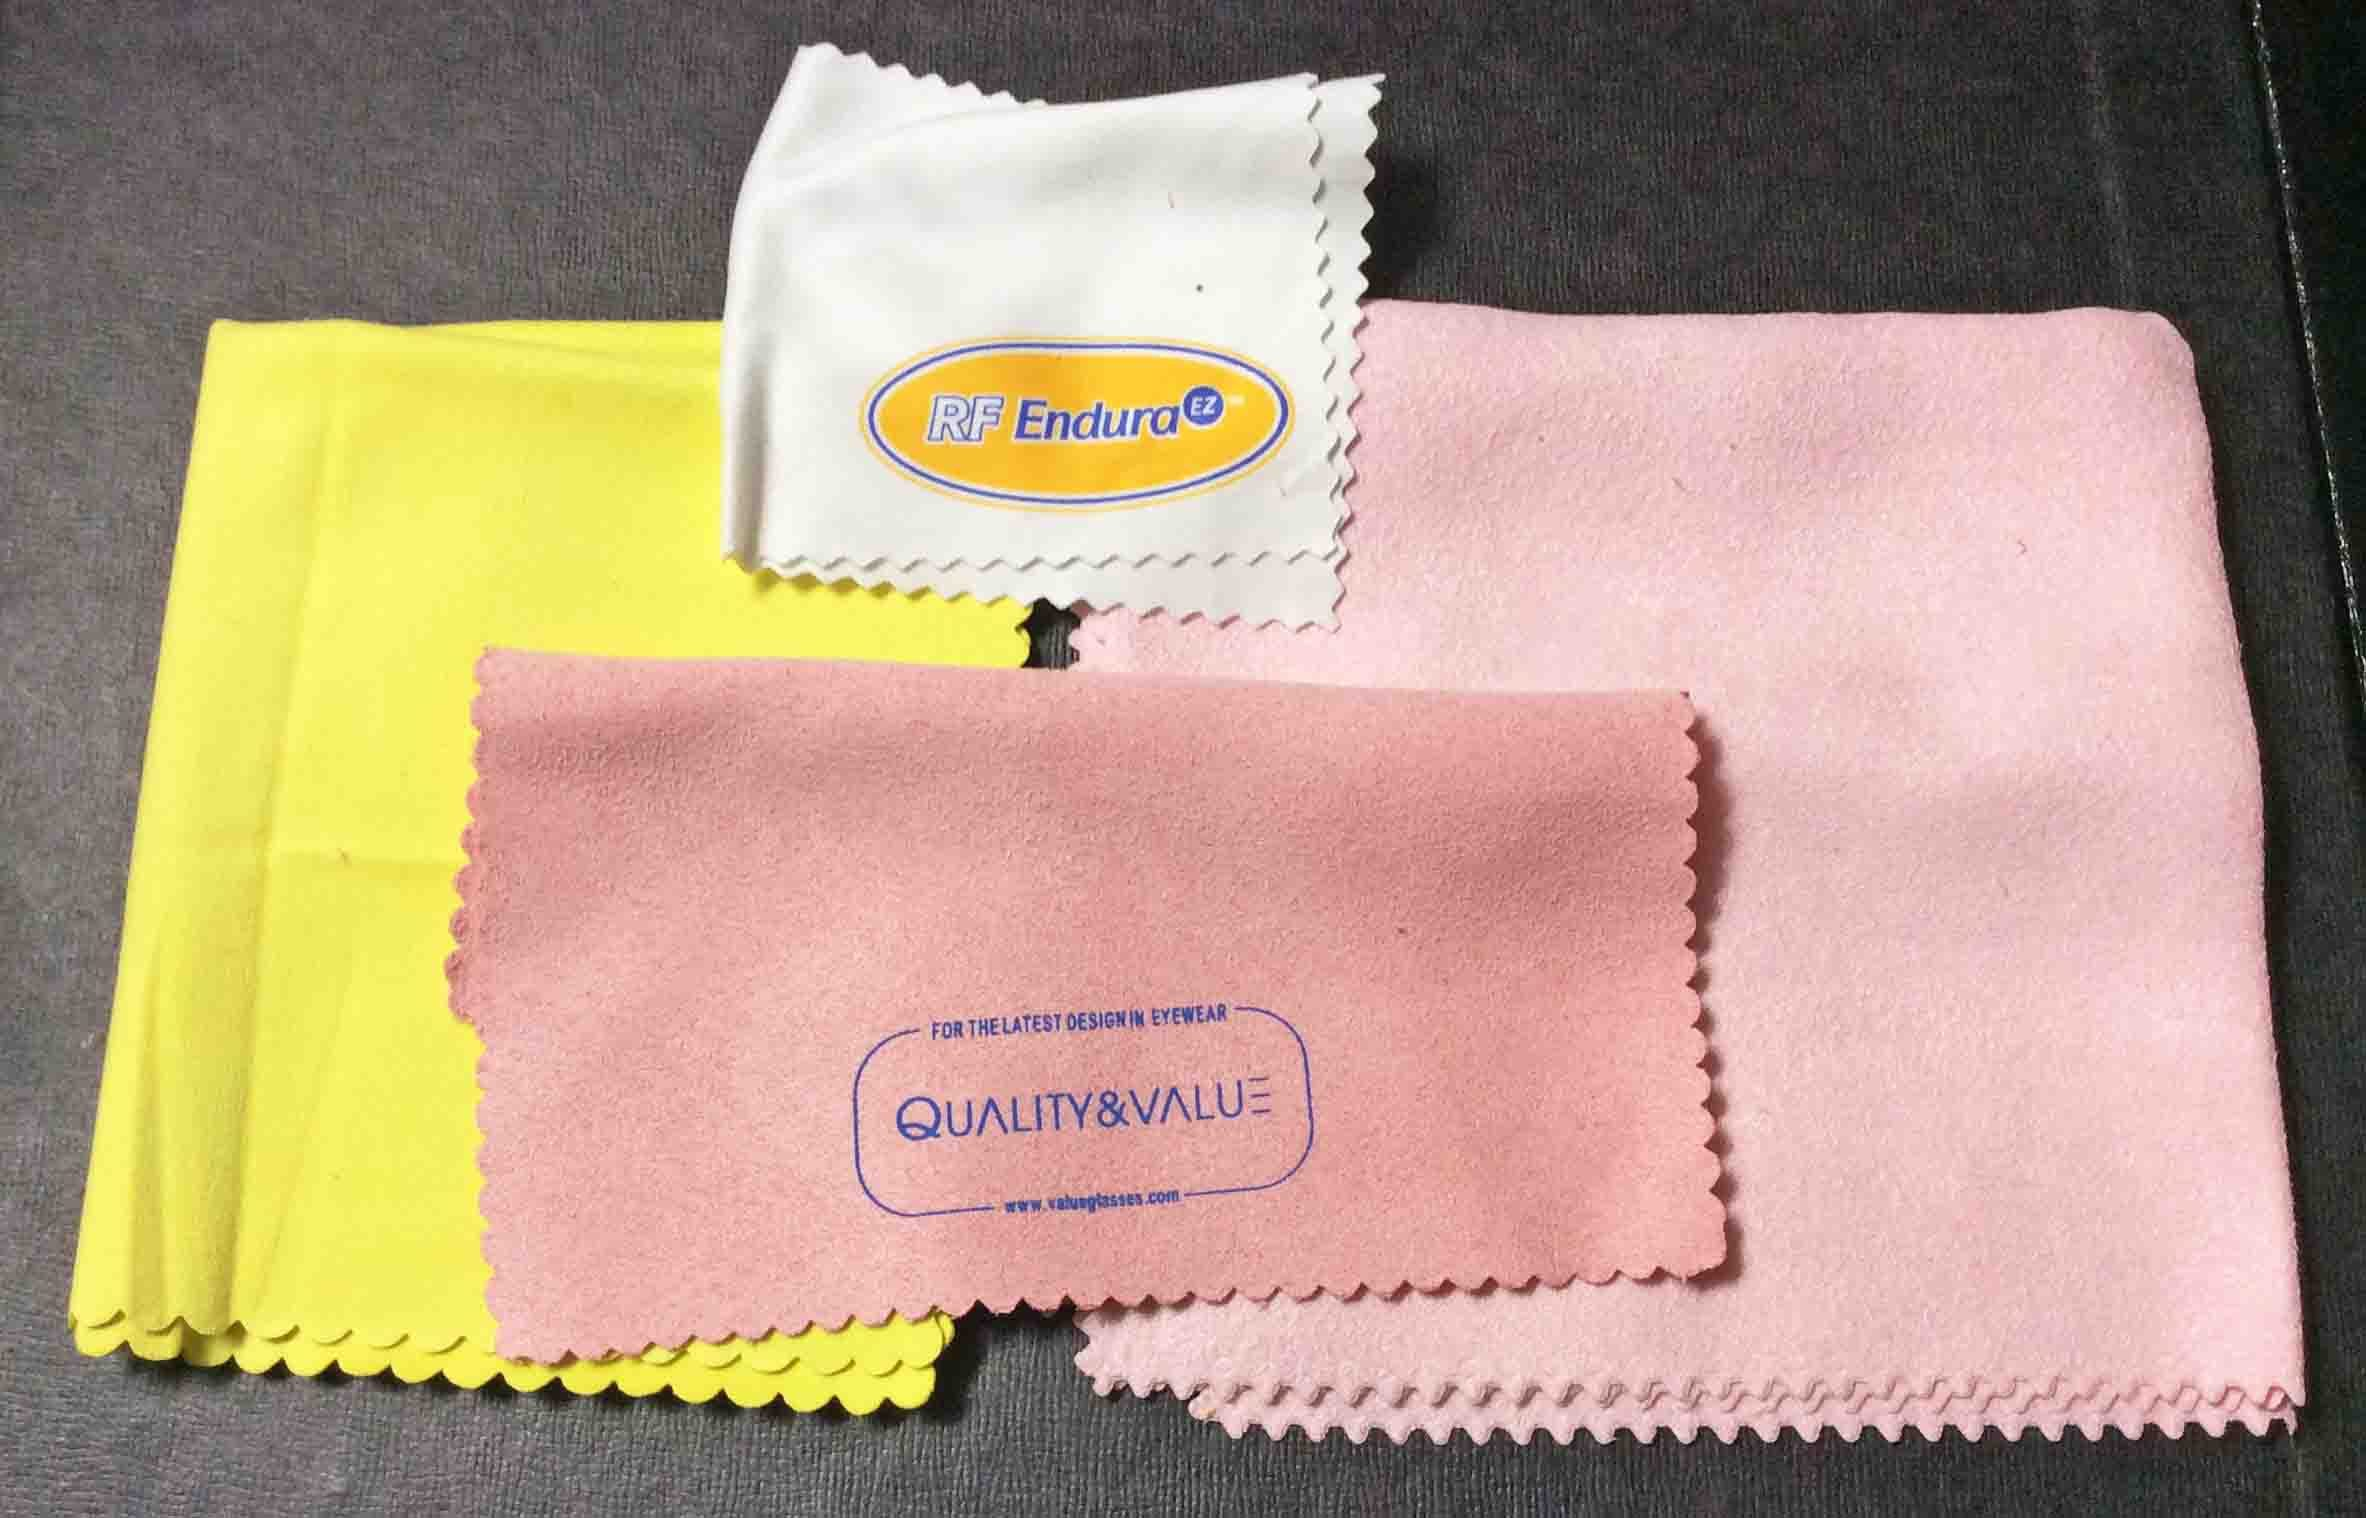 Microfiber cloth for cleaning Blu-ray discs